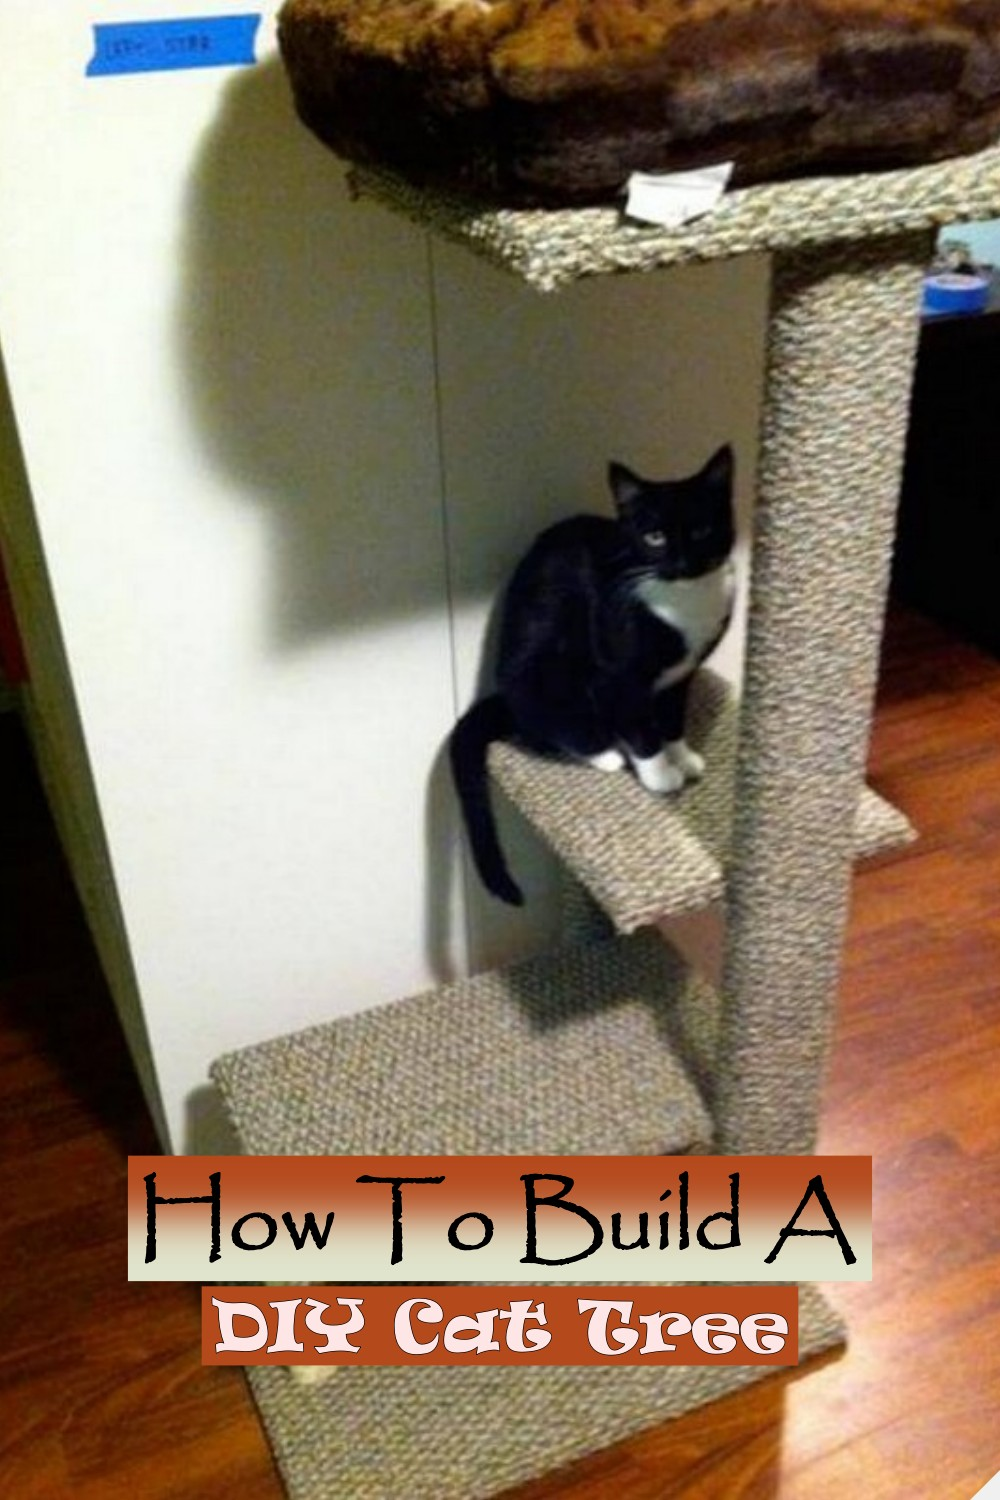 How To Build A DIY Cat Tree